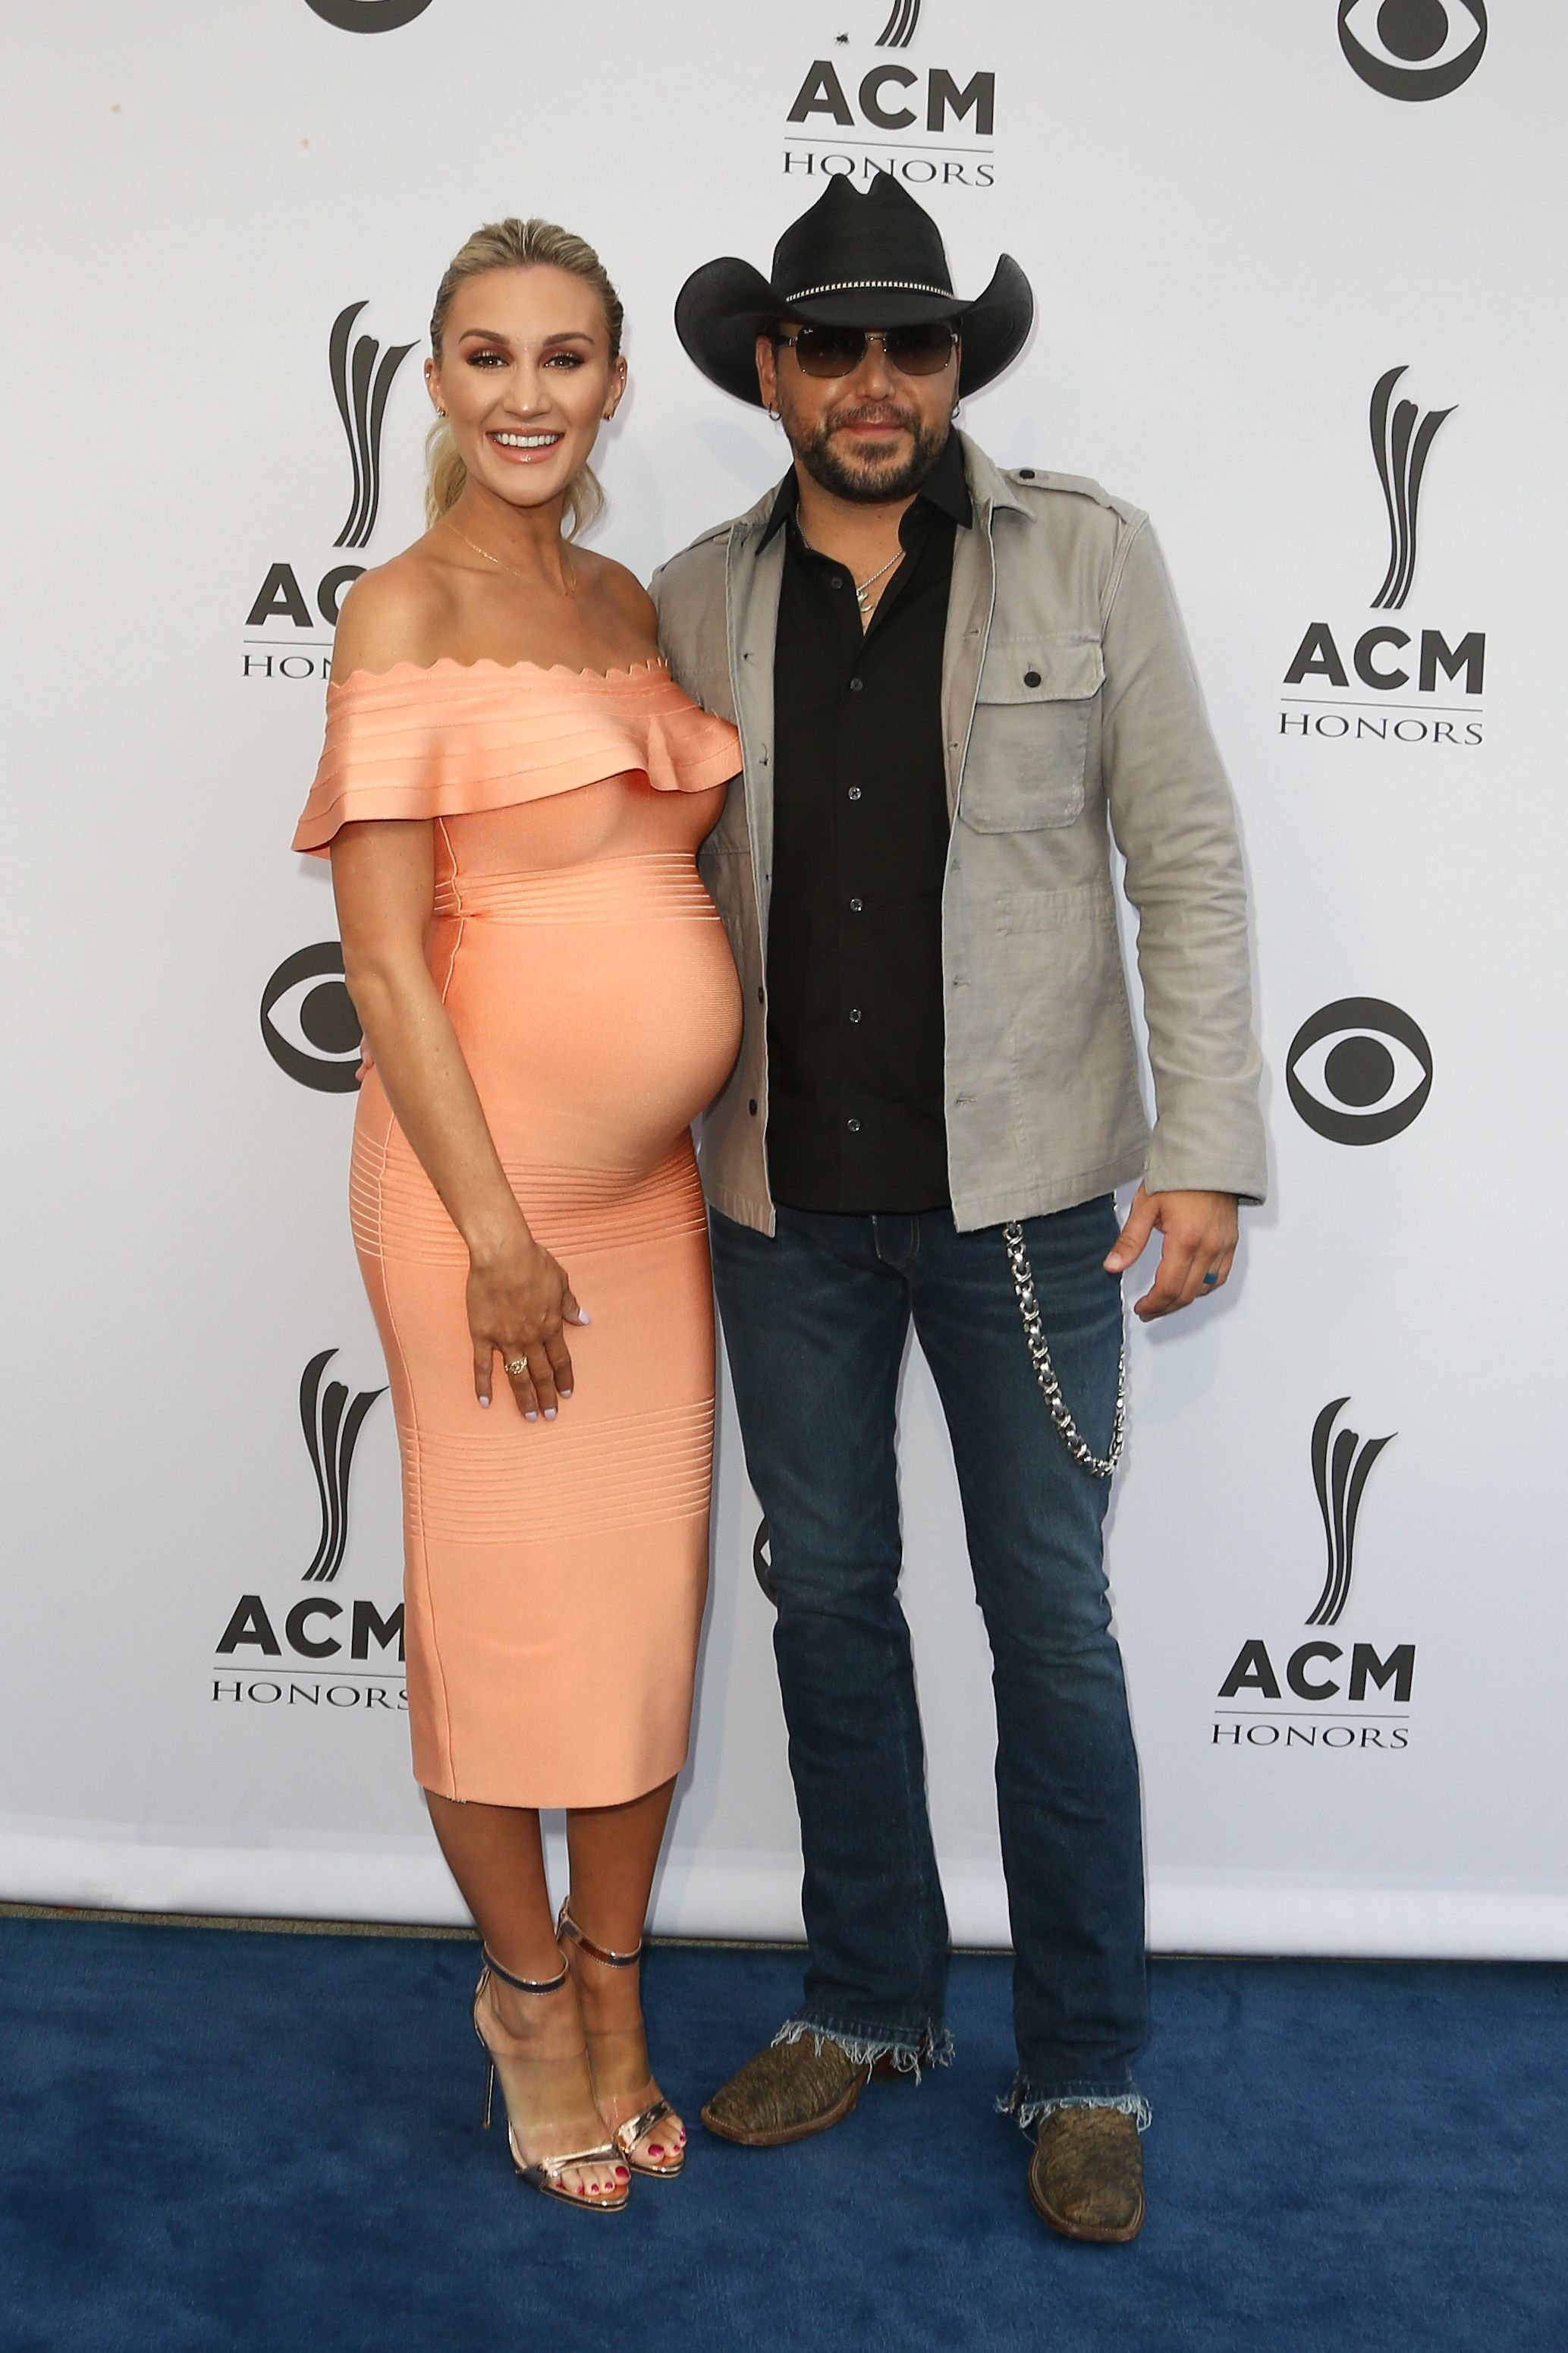 Brittany Kerr and Jason Aldean attend the 11th Annual ACM Honors in Nashville, Tenn., on Aug. 23, 2017.